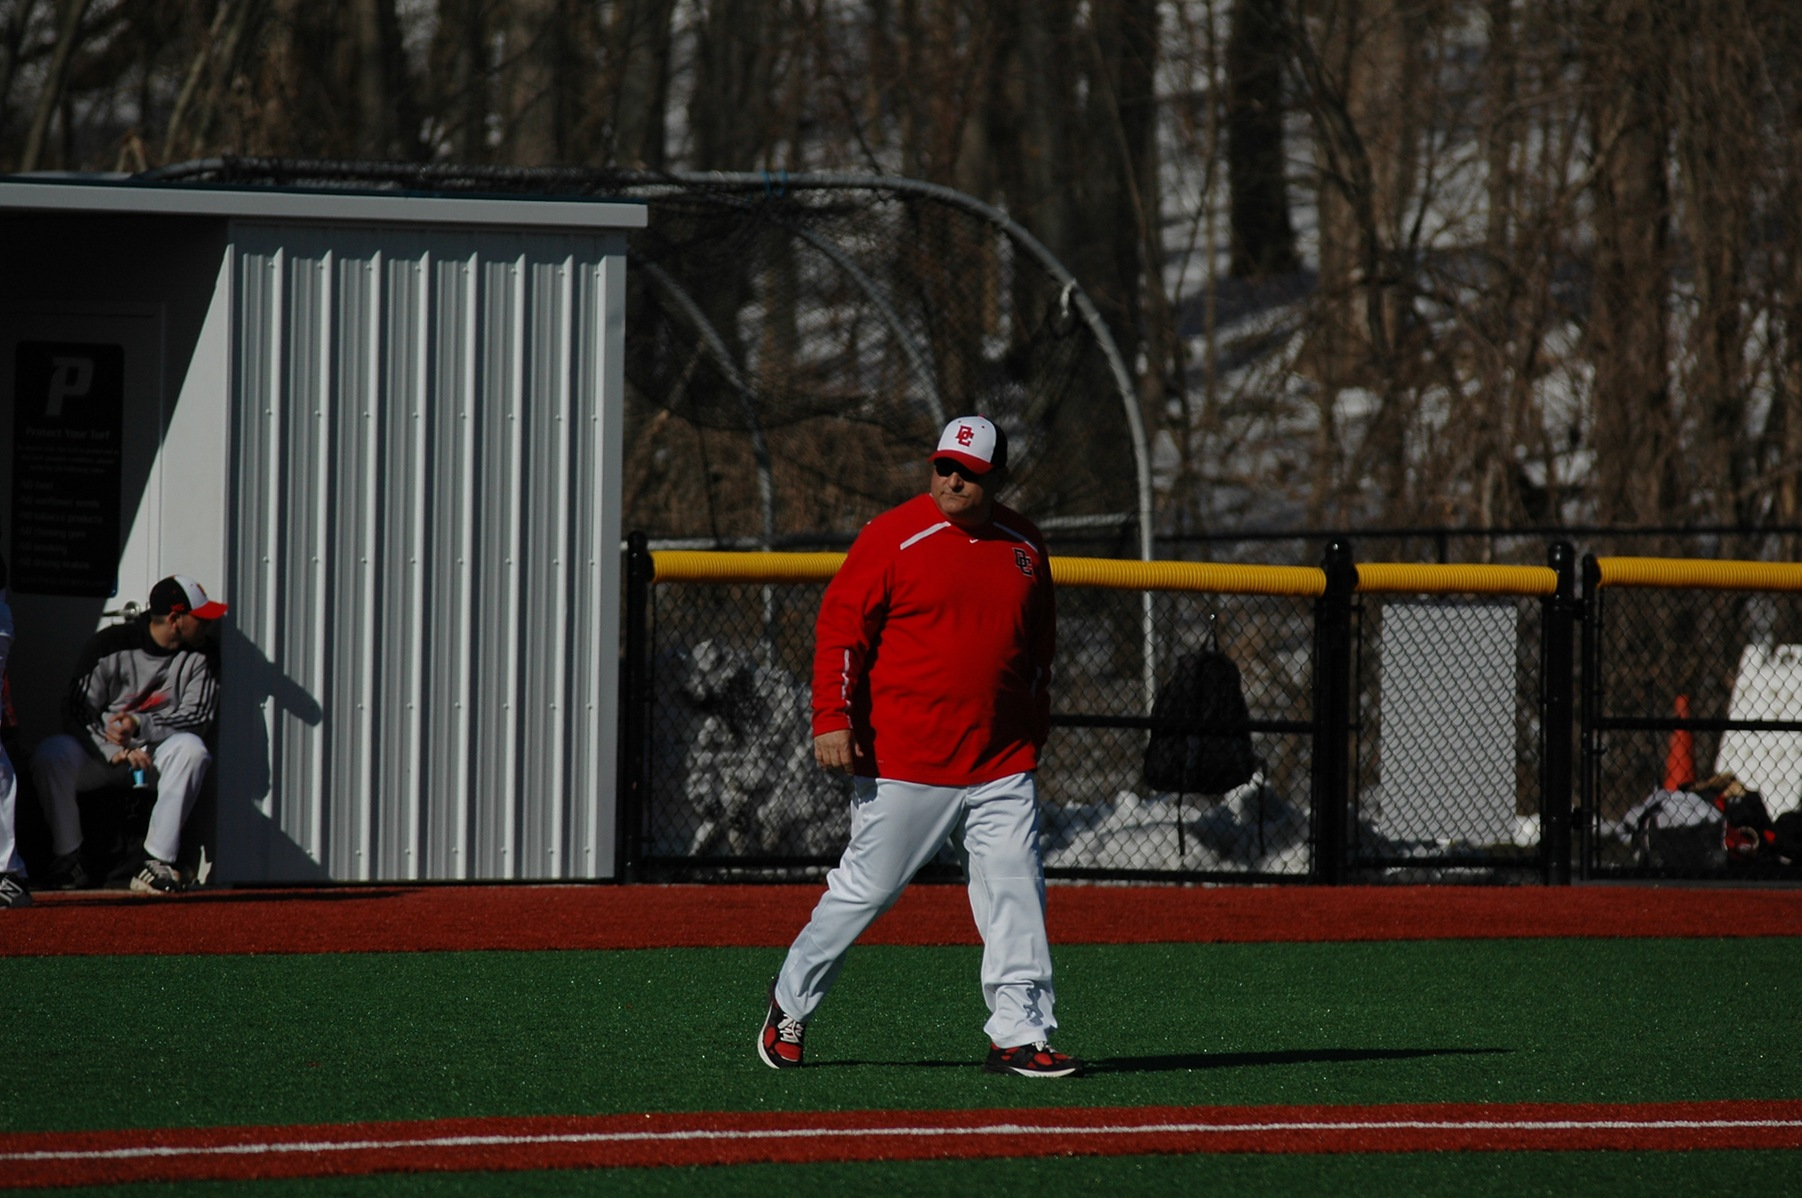 GIANNETTI EARNS 800TH CAREER WIN IN SWEEP OF NYACK COLLEGE